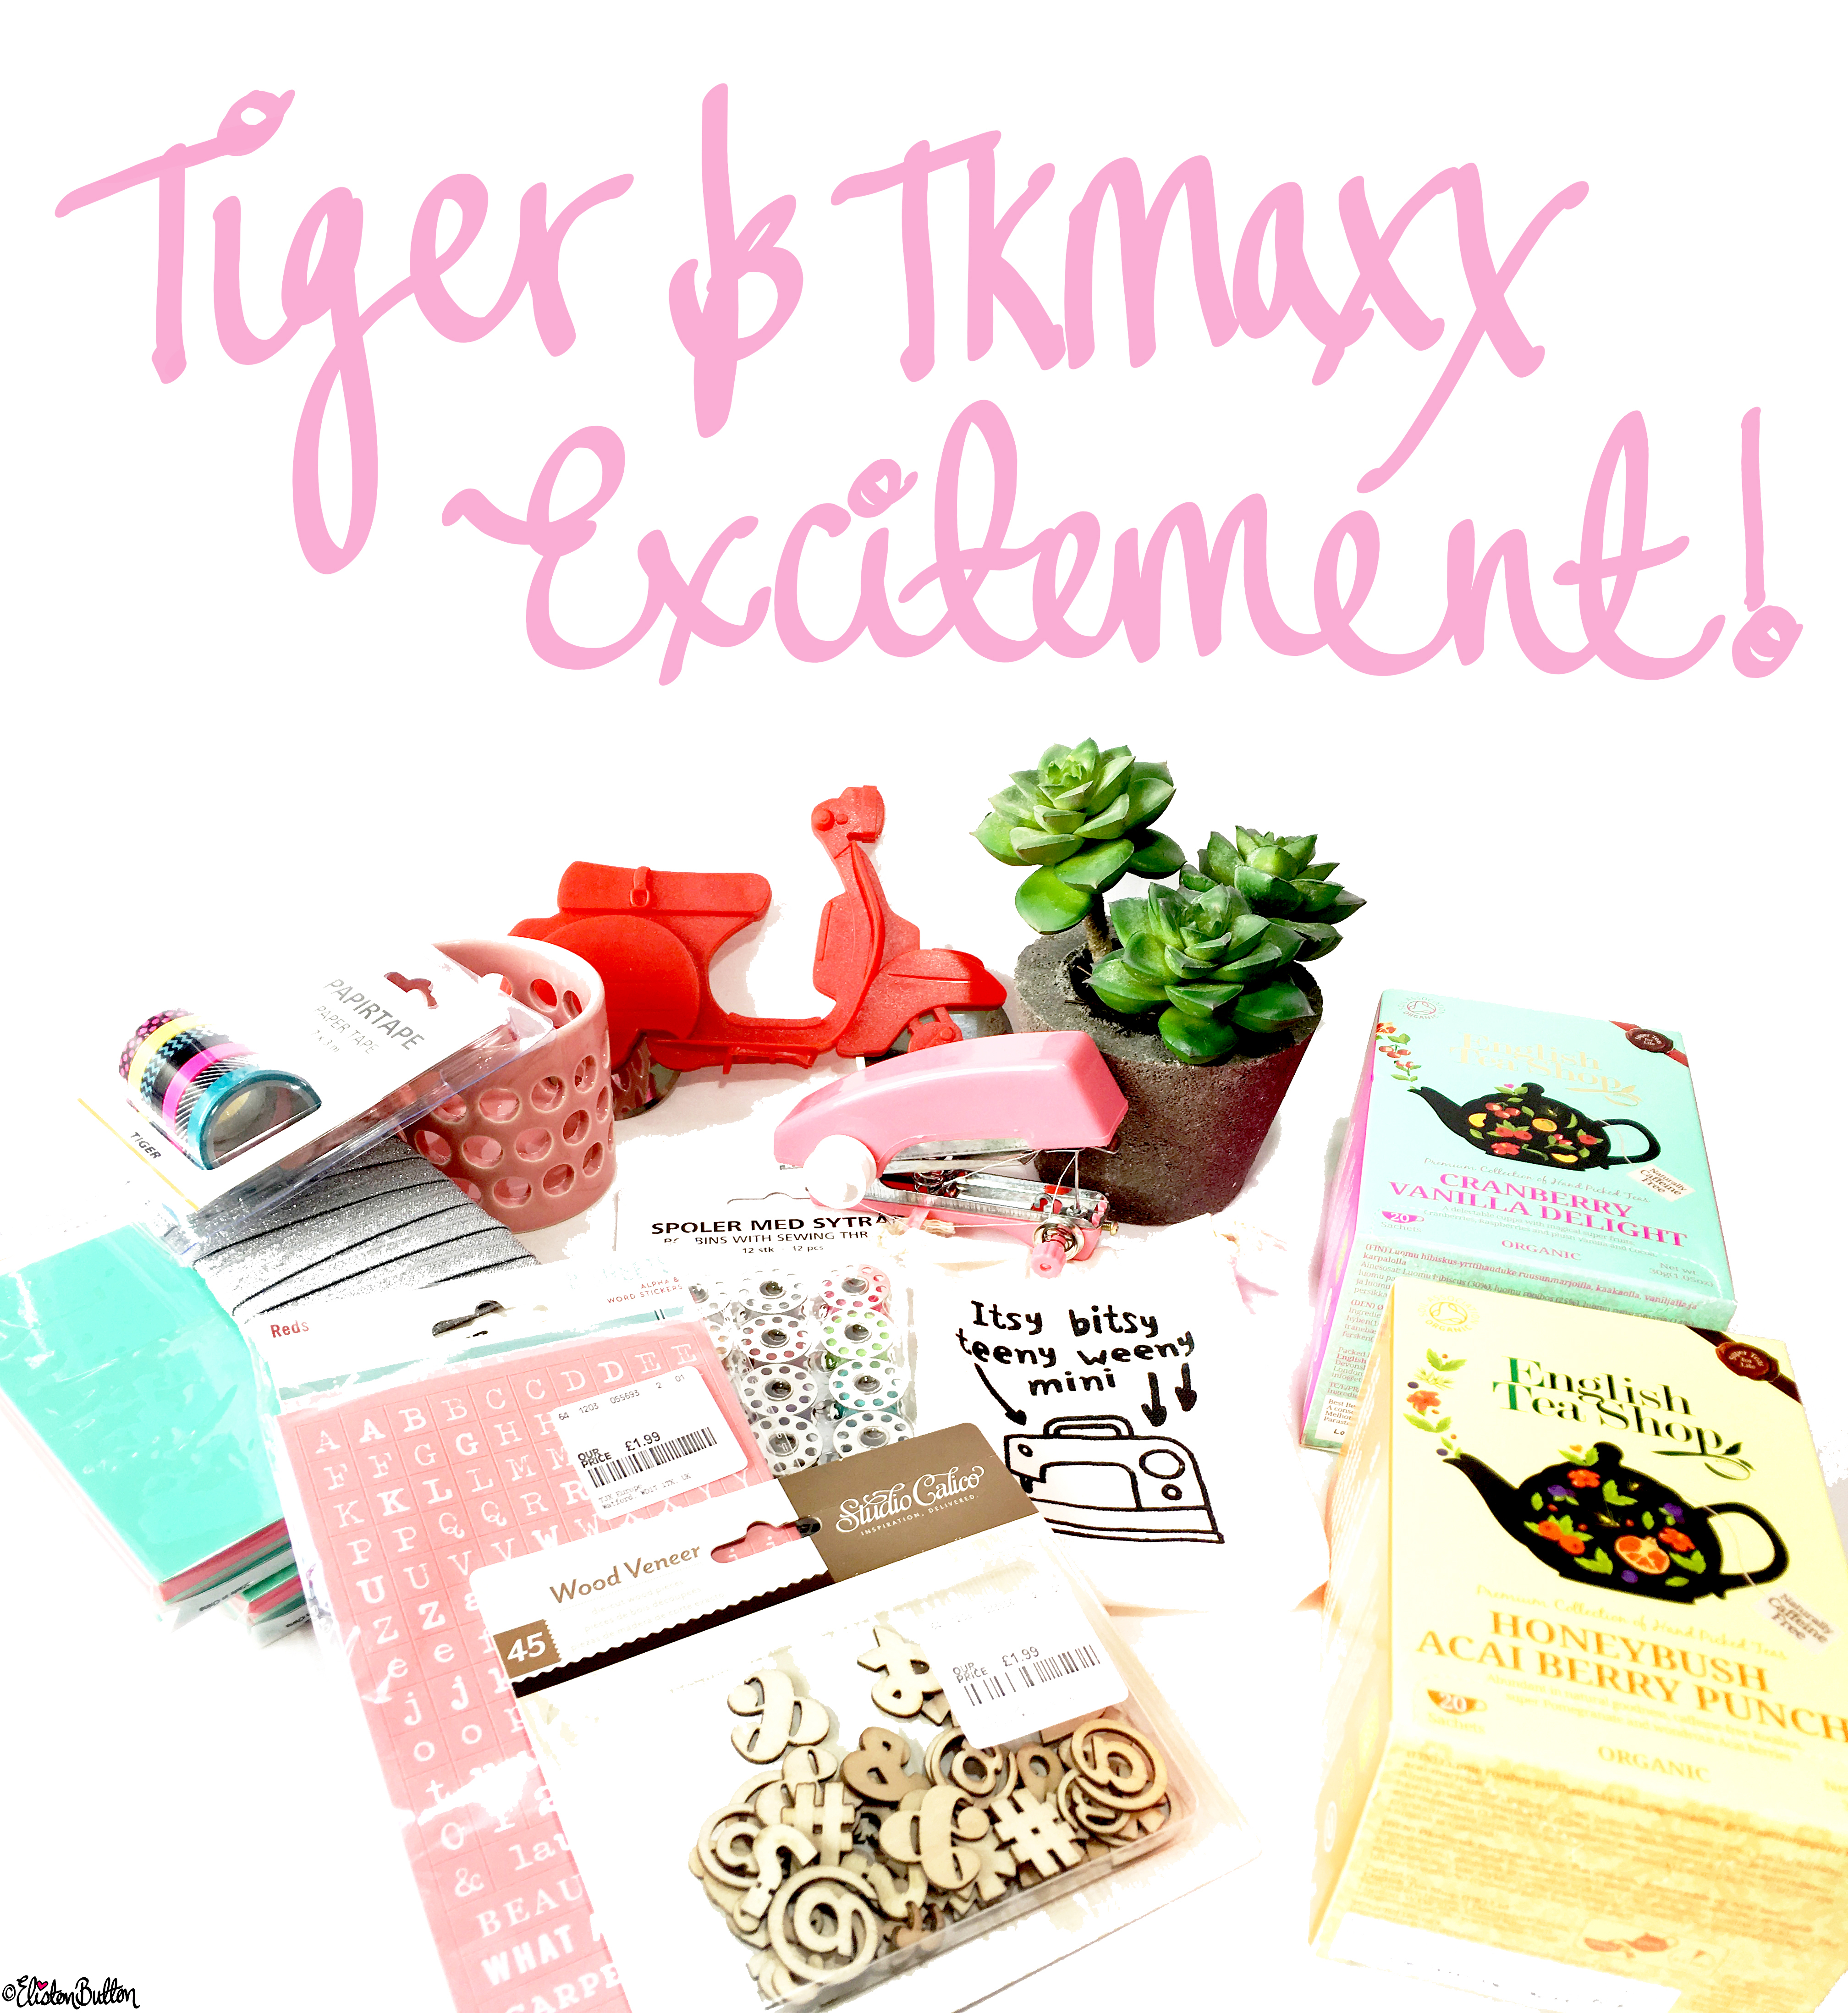 Tiger and TKMaxx Excitement! at www.elistonbutton.com - Eliston Button - That Crafty Kid – Art, Design, Craft & Adventure.